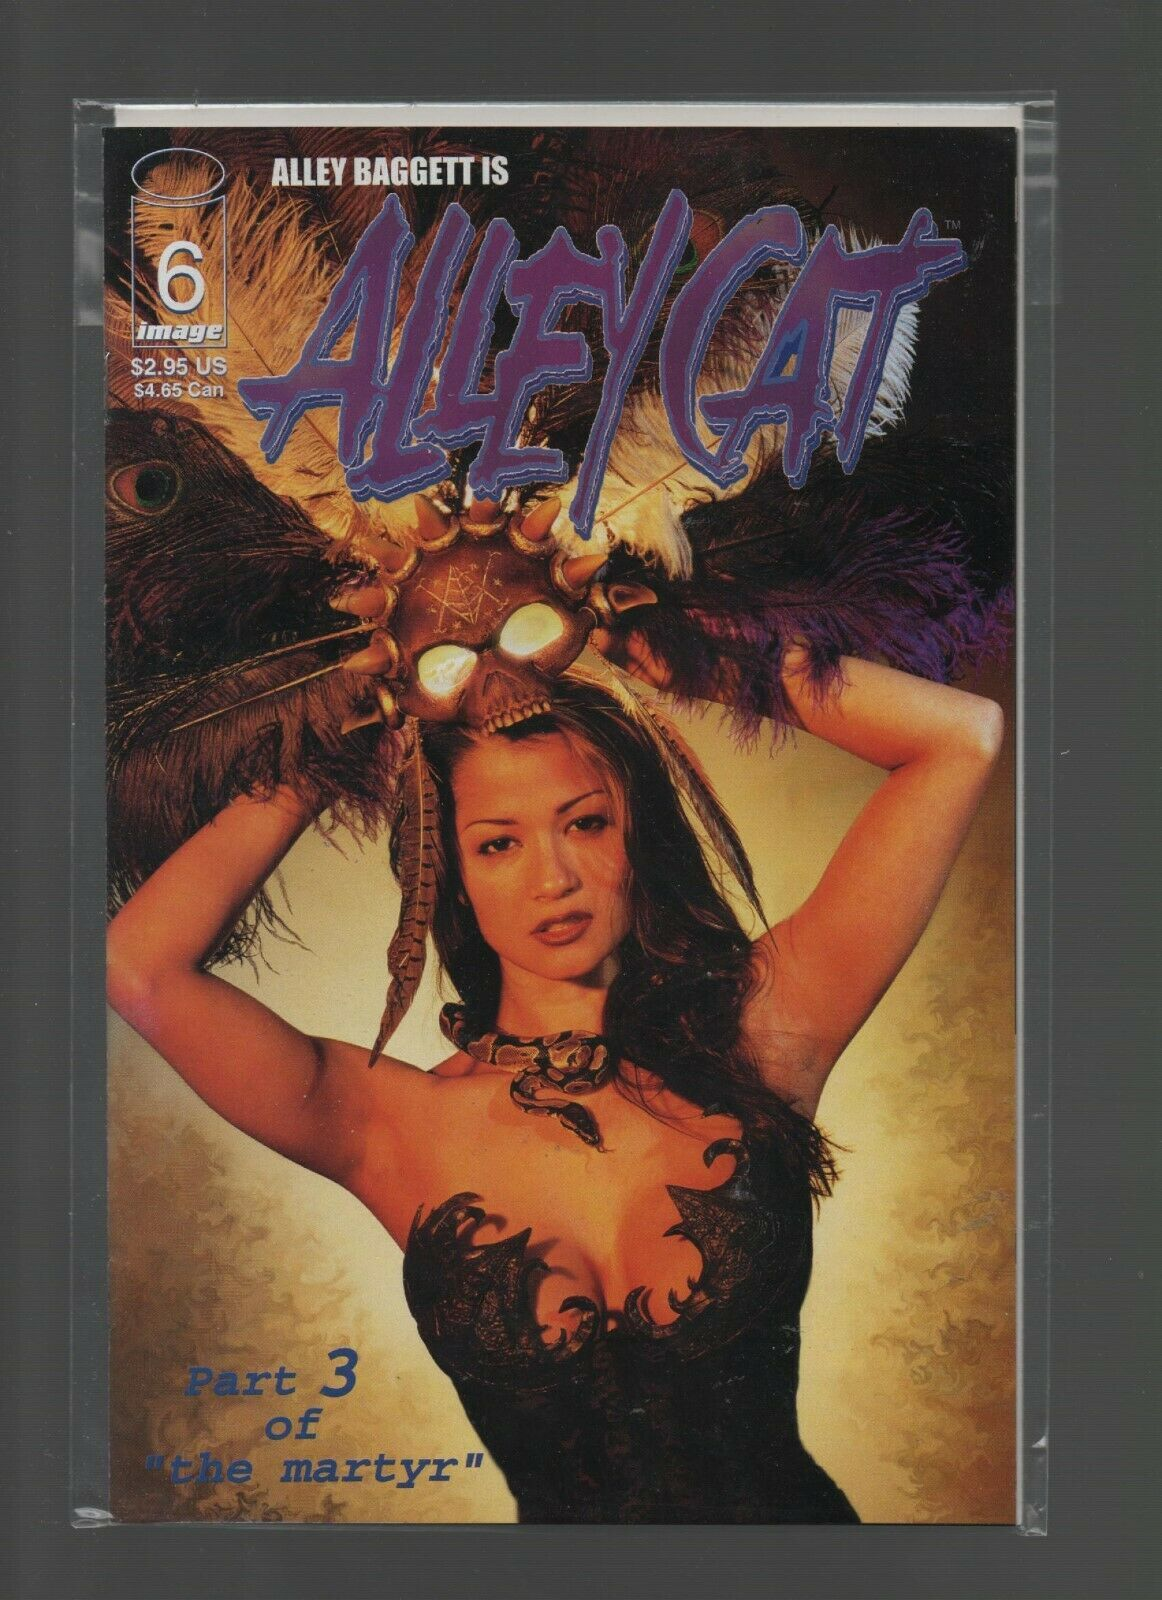 Alley Cat #6 - Image Comics - Alley Baggett - 1999 - Martyr Part 3 - Photo Cover